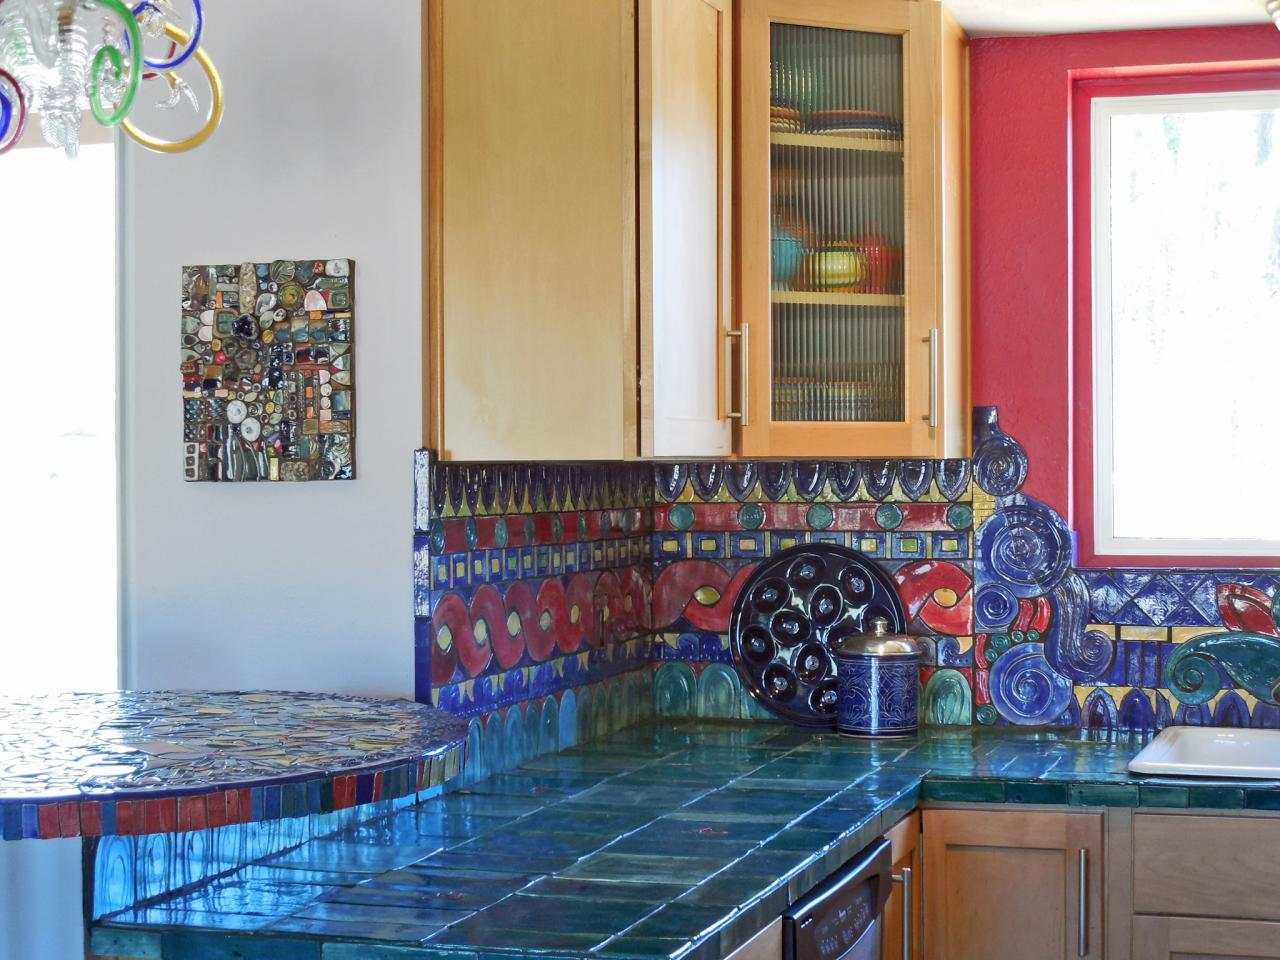 original_vicki-morrow-multicolor-kitchen-handmade-tile-backsplash-countertop-jpg-rend-hgtvcom-1280-960